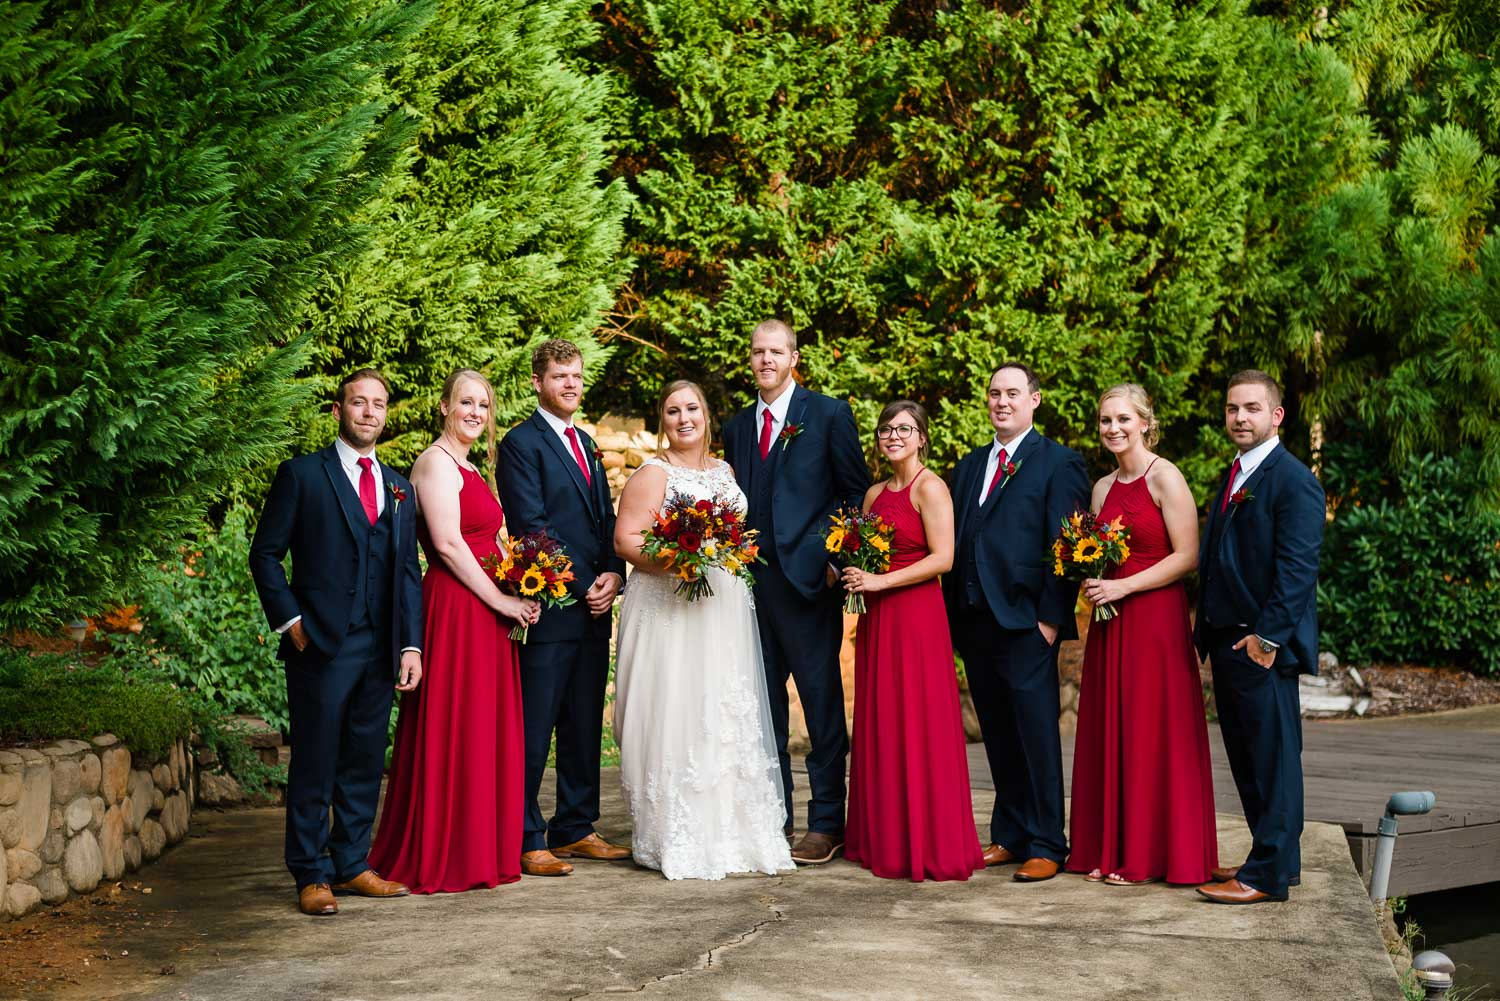 hockey goalie gets married at Indigo Falls with wedding party in deep red and navy.